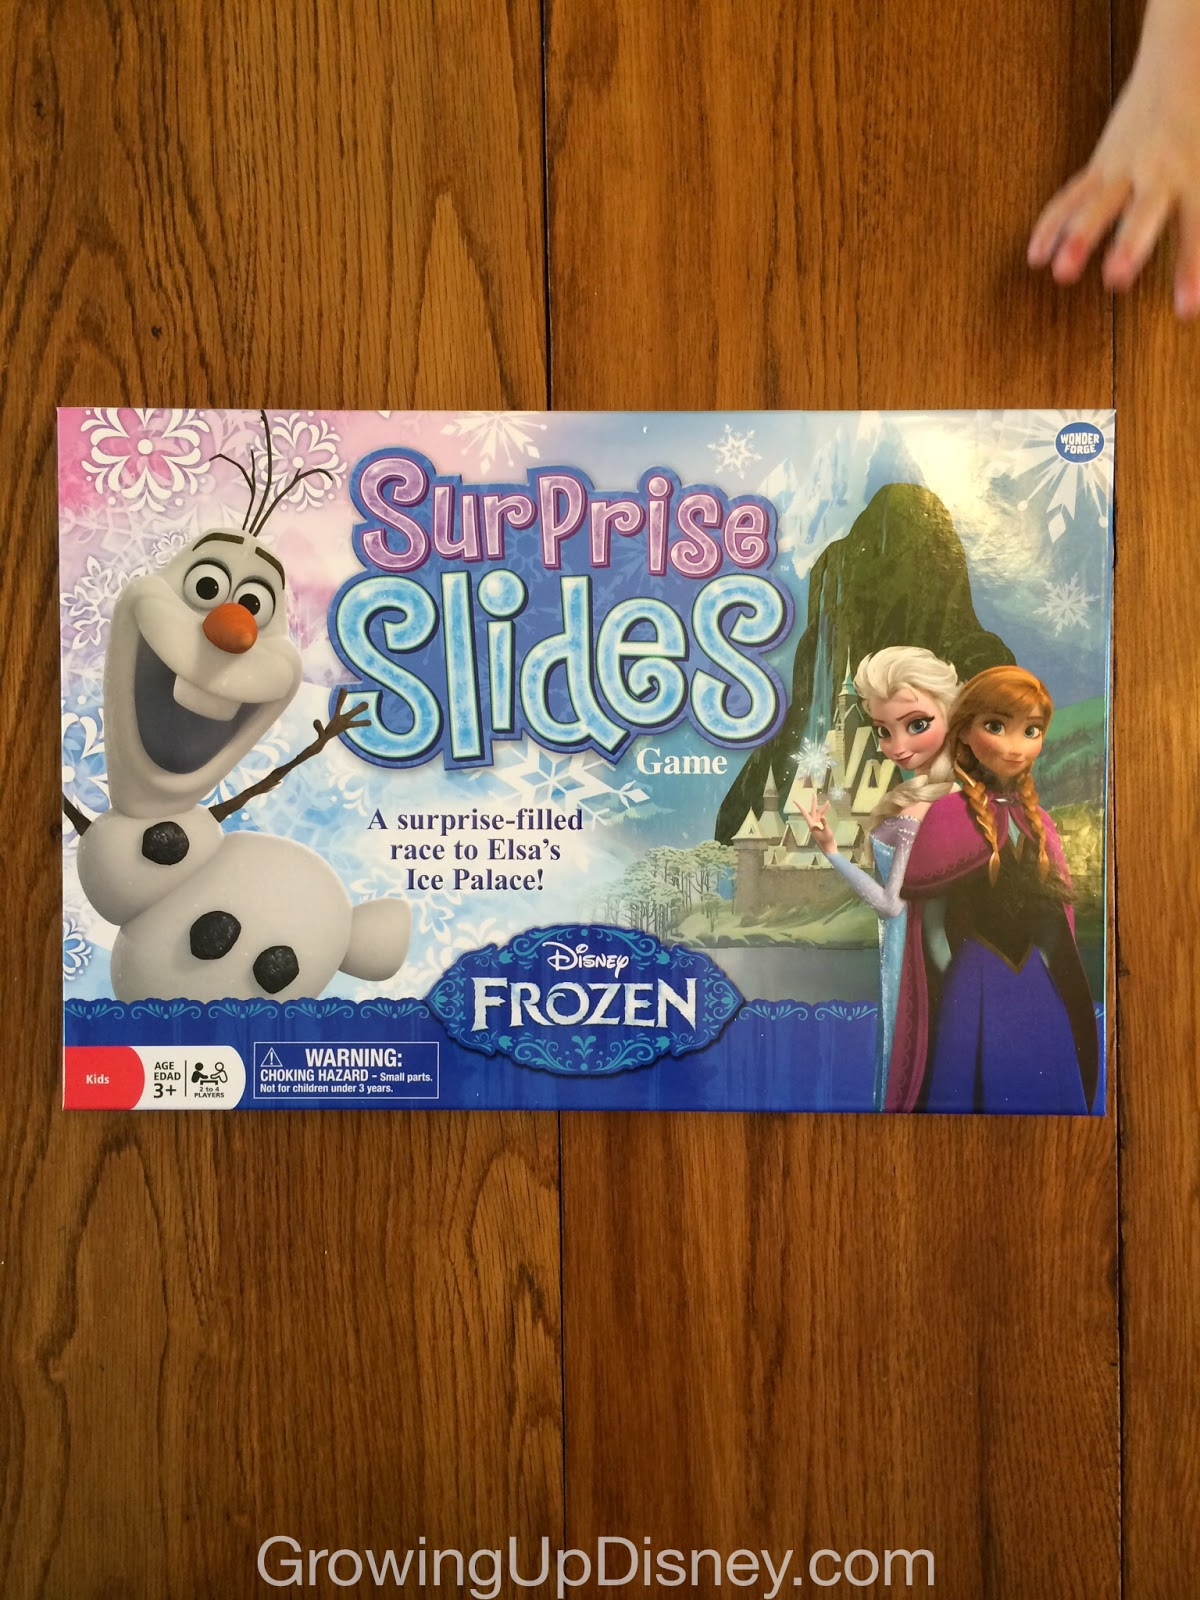 Disney Frozen board game